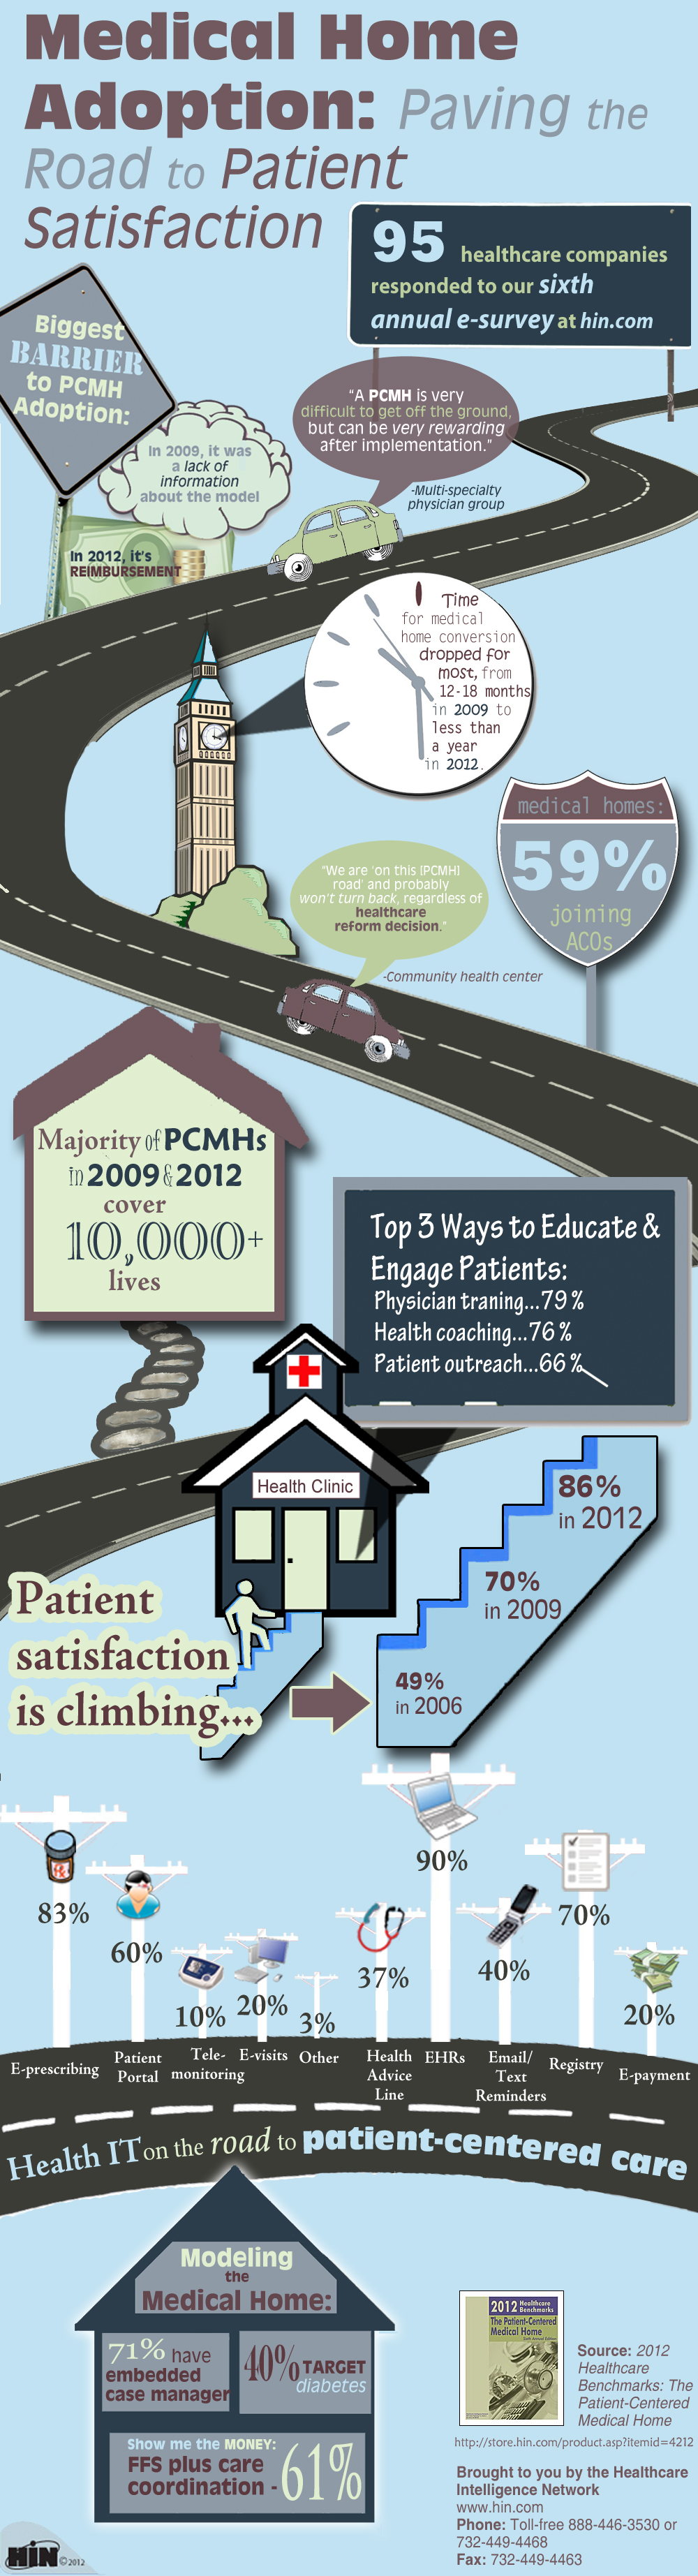 Patient centred care essay